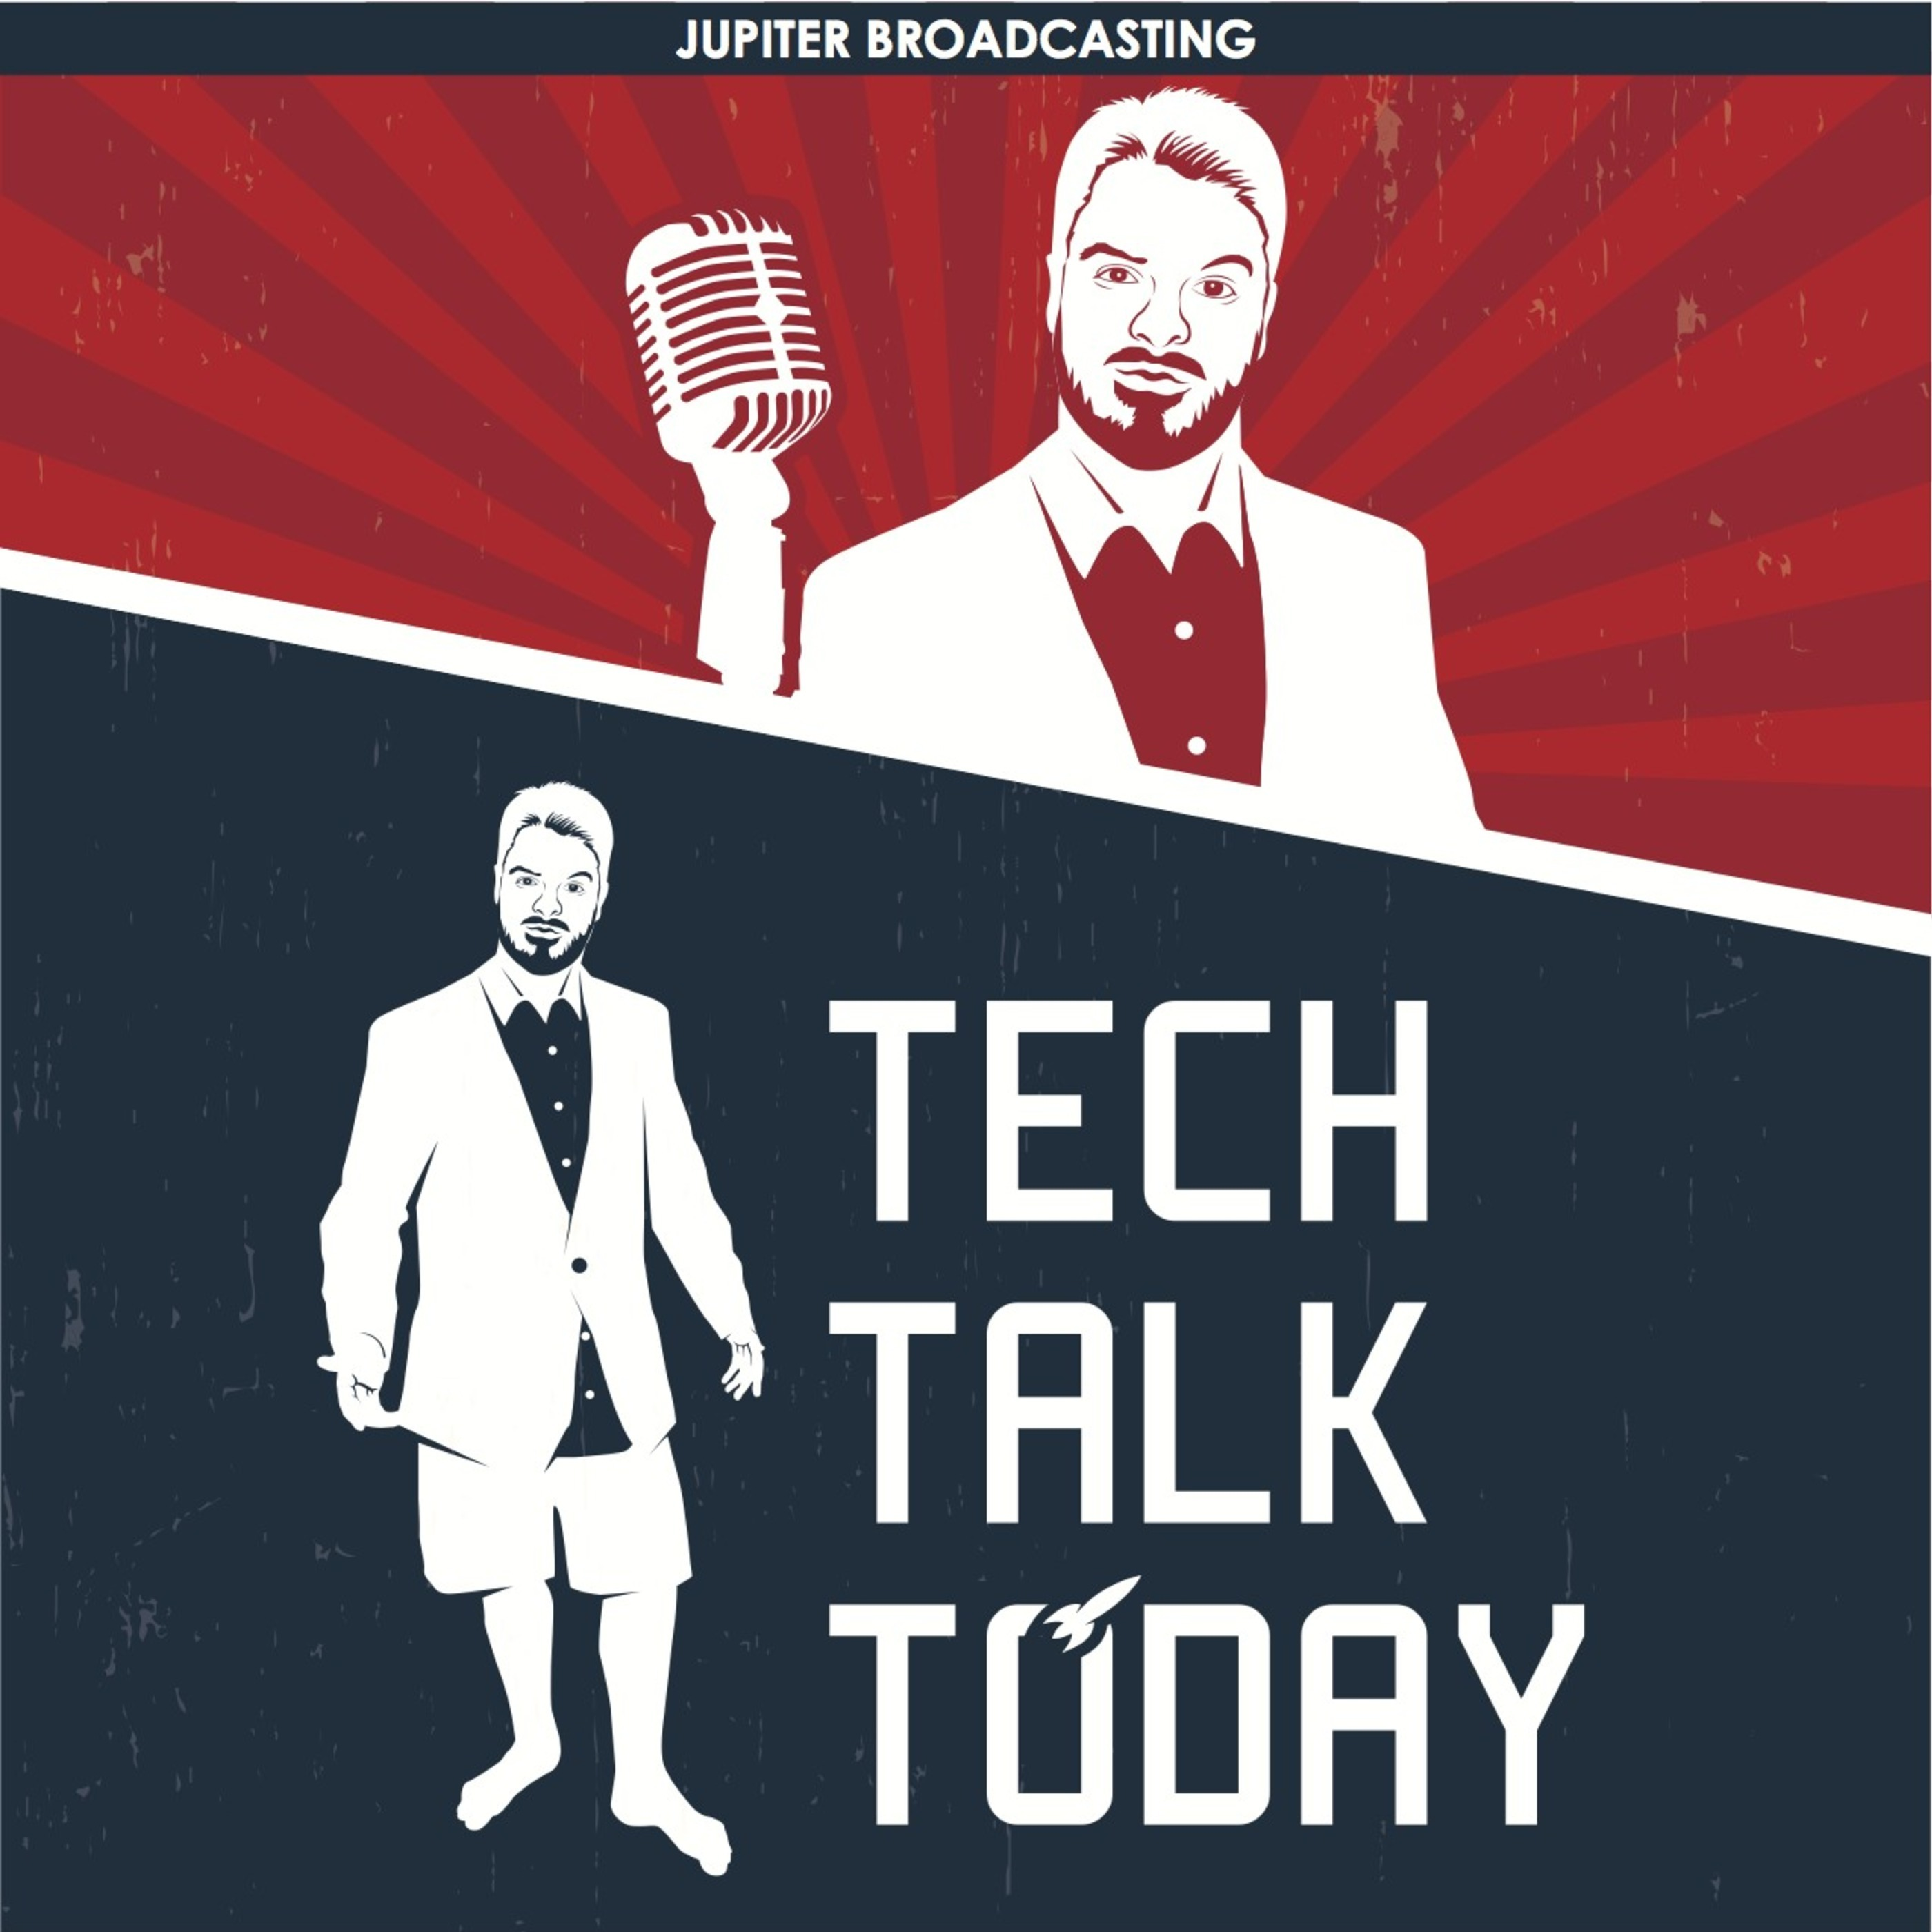 Episode 17: Venomous Snakeoil | Tech Talk Today 170